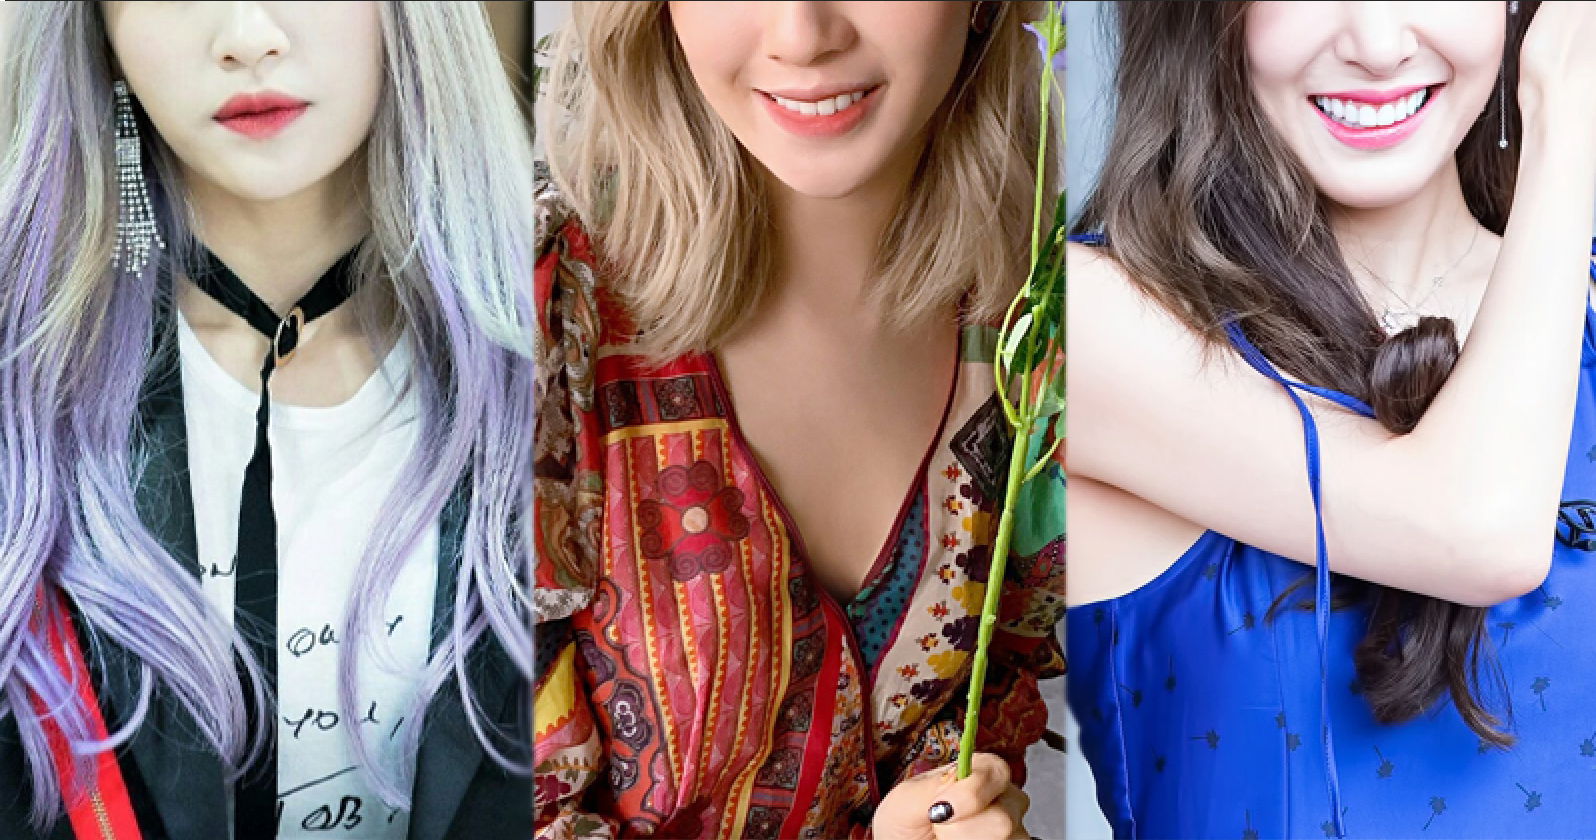 6 Female Idols With Amazing Vocals But Are Not Used Properly In Their Groups